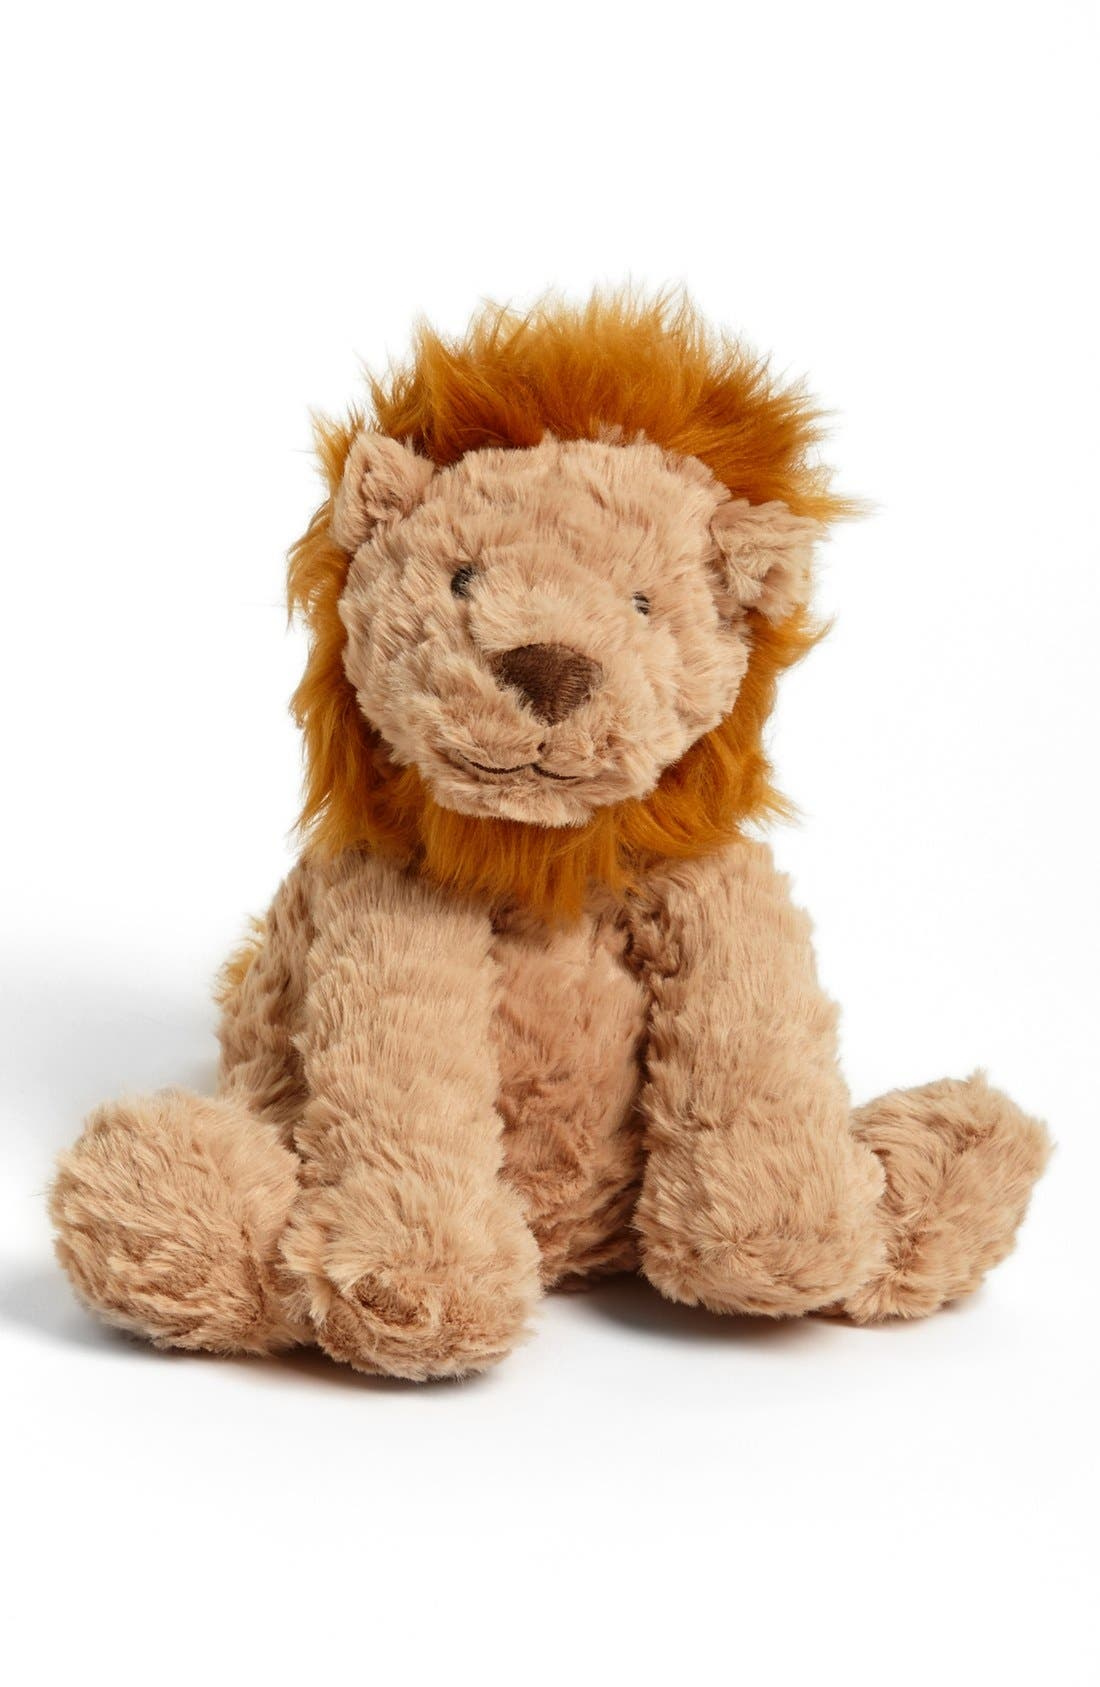 Jellycat 'Fuddlewuddle Lion' Stuffed Animal